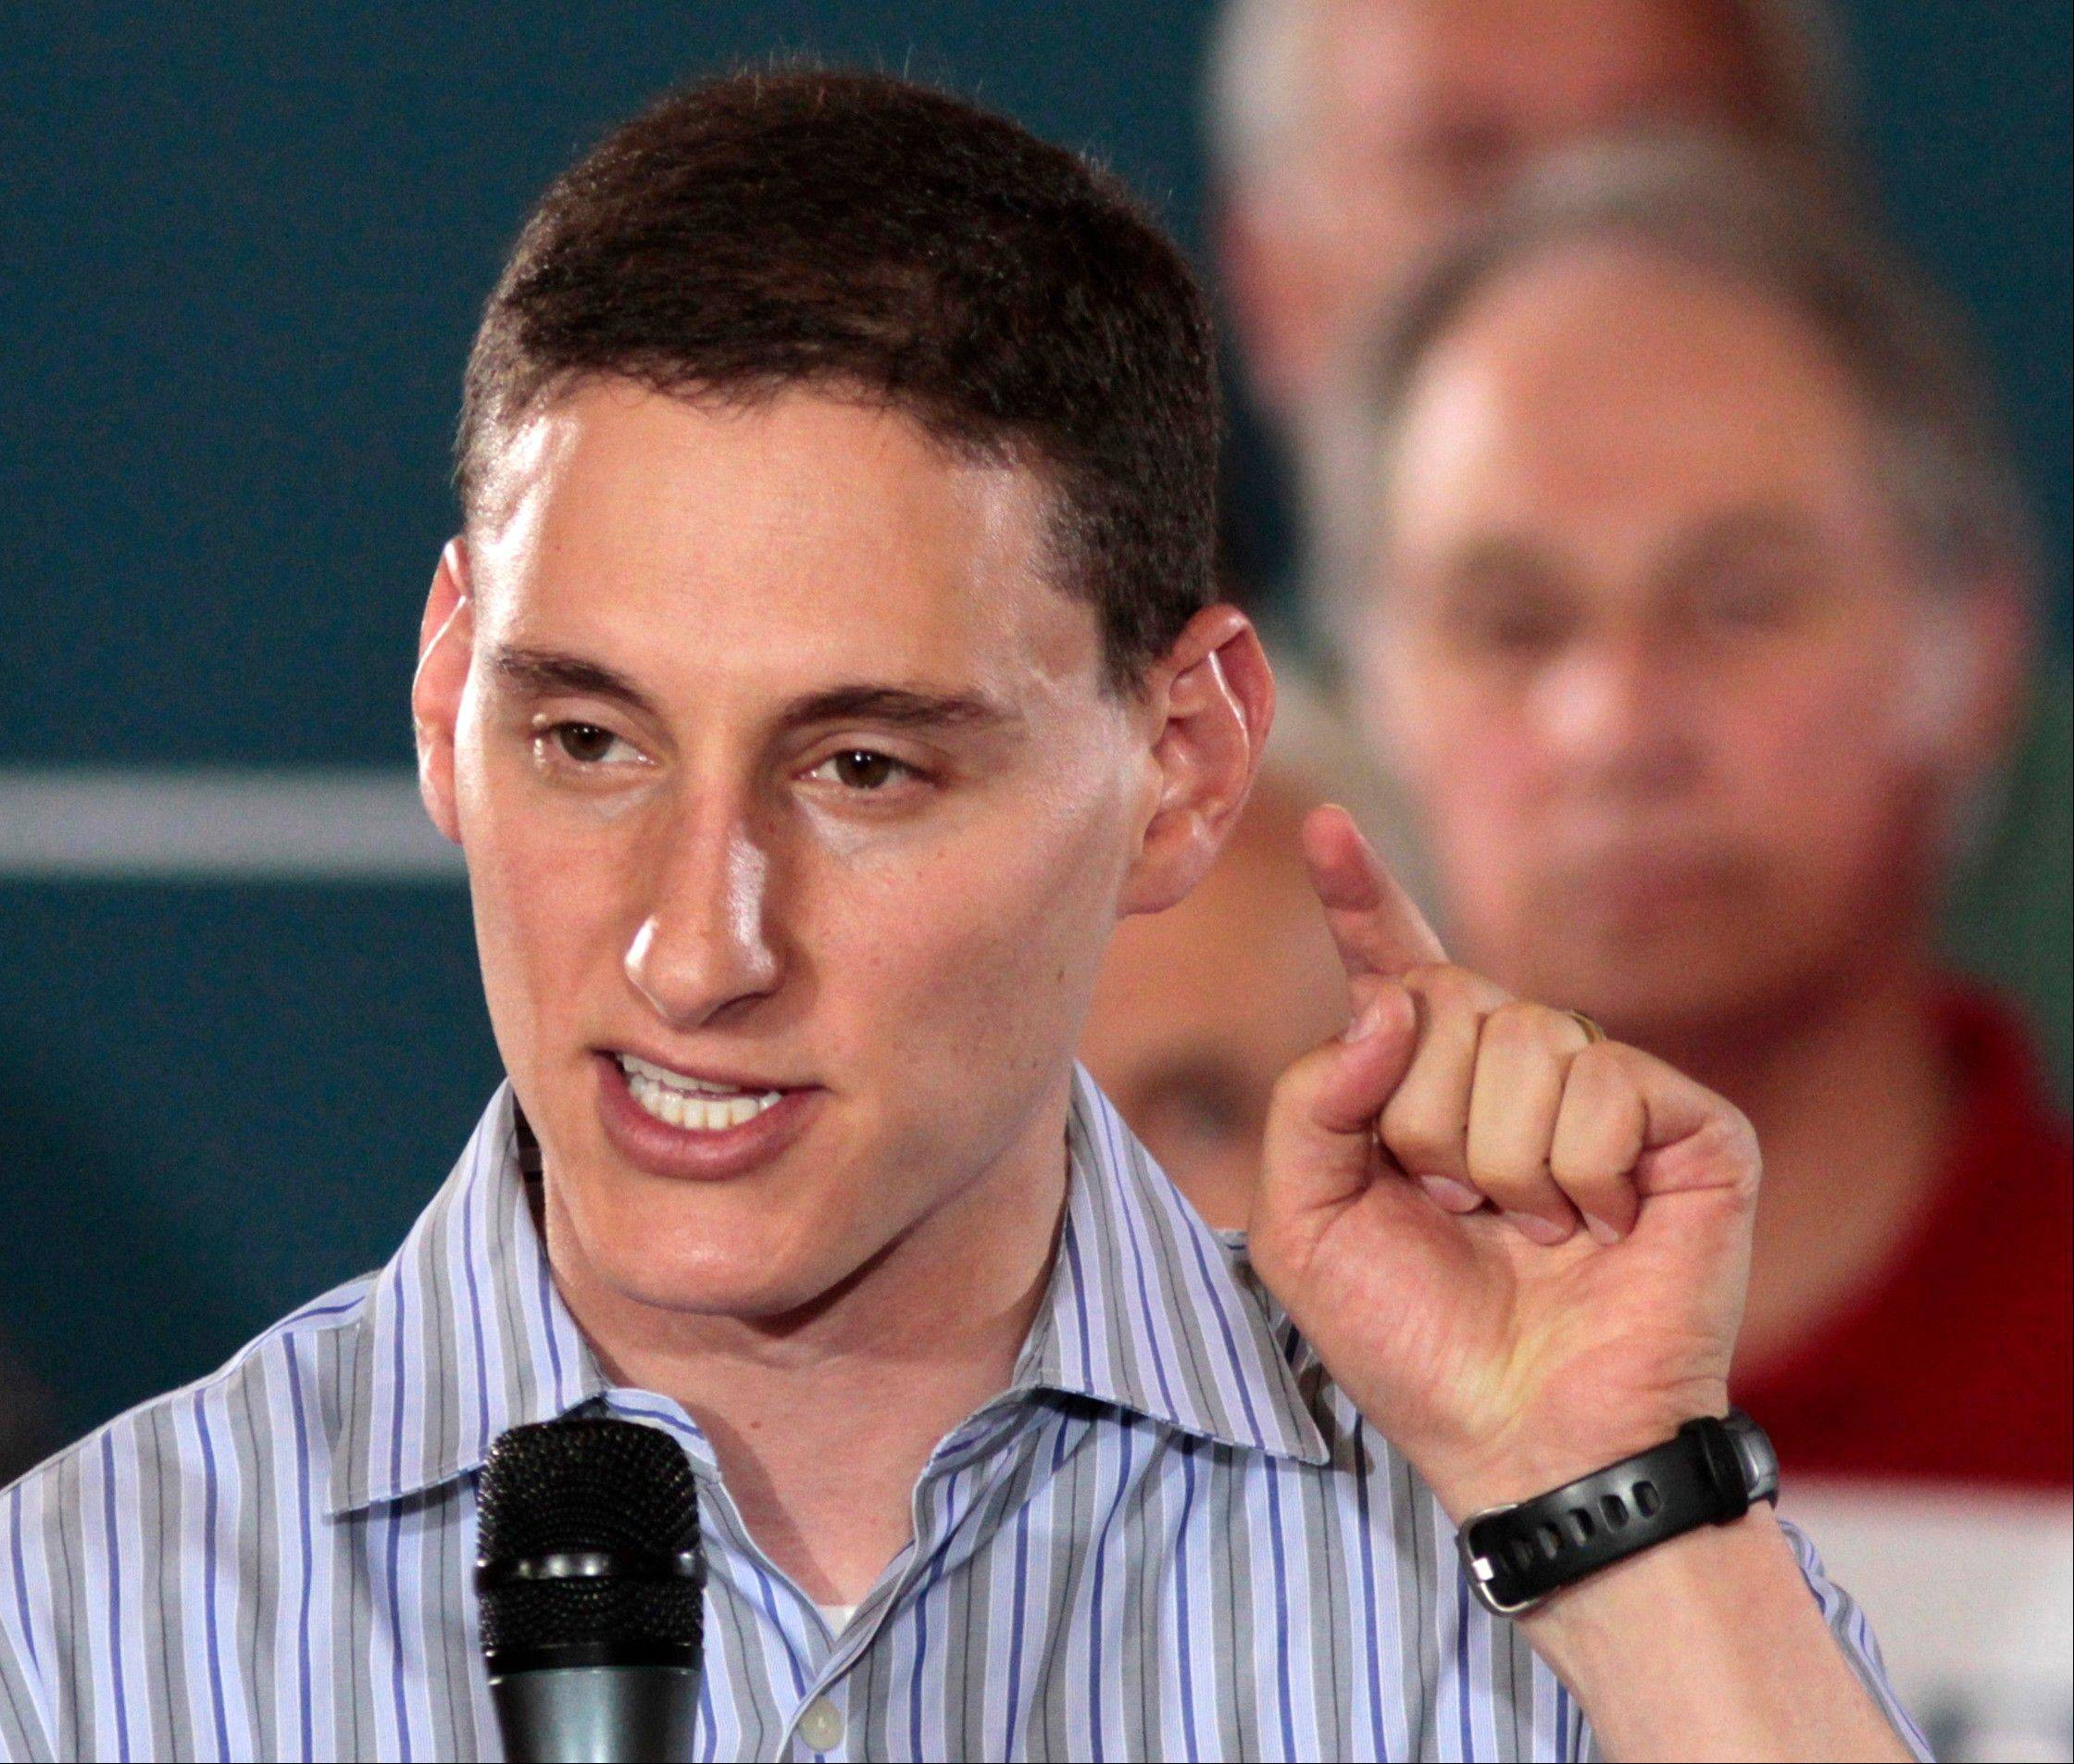 FILE - In this Sept. 1, 2012 file photo, Ohio Republican Senate candidate Josh Mandel speaks at a campaign rally in Cincinnati. Friends of coal are certain they know the enemy. They point to President Barack Obama and his Environmental Protection Agency, arguing that the administration�s new clean air rules dealt a devastating blow to a multibillion-dollar industry that has been the lifeblood of Appalachia for generations. The standards imposed earlier this year tightened limits on existing coal powered-plant emissions; agency guidelines on restricting greenhouse gases could affect new plants as early as 2013. (AP Photo/Al Behrman, File)